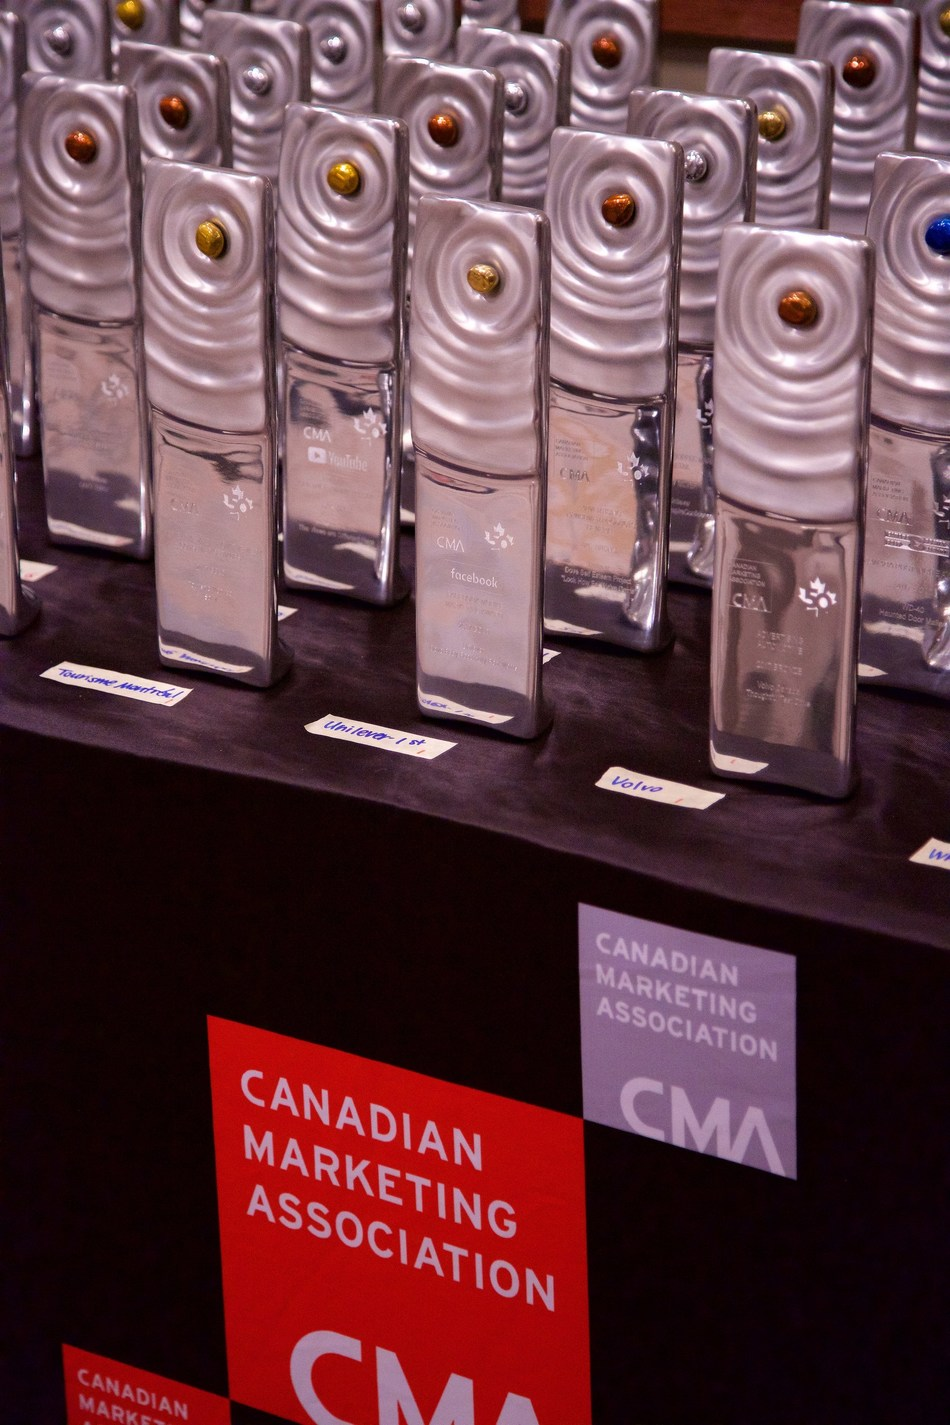 Canada's top marketers receive trophies at the Canadian Marketing Association Awards Gala (CNW Group/Canadian Marketing Association)